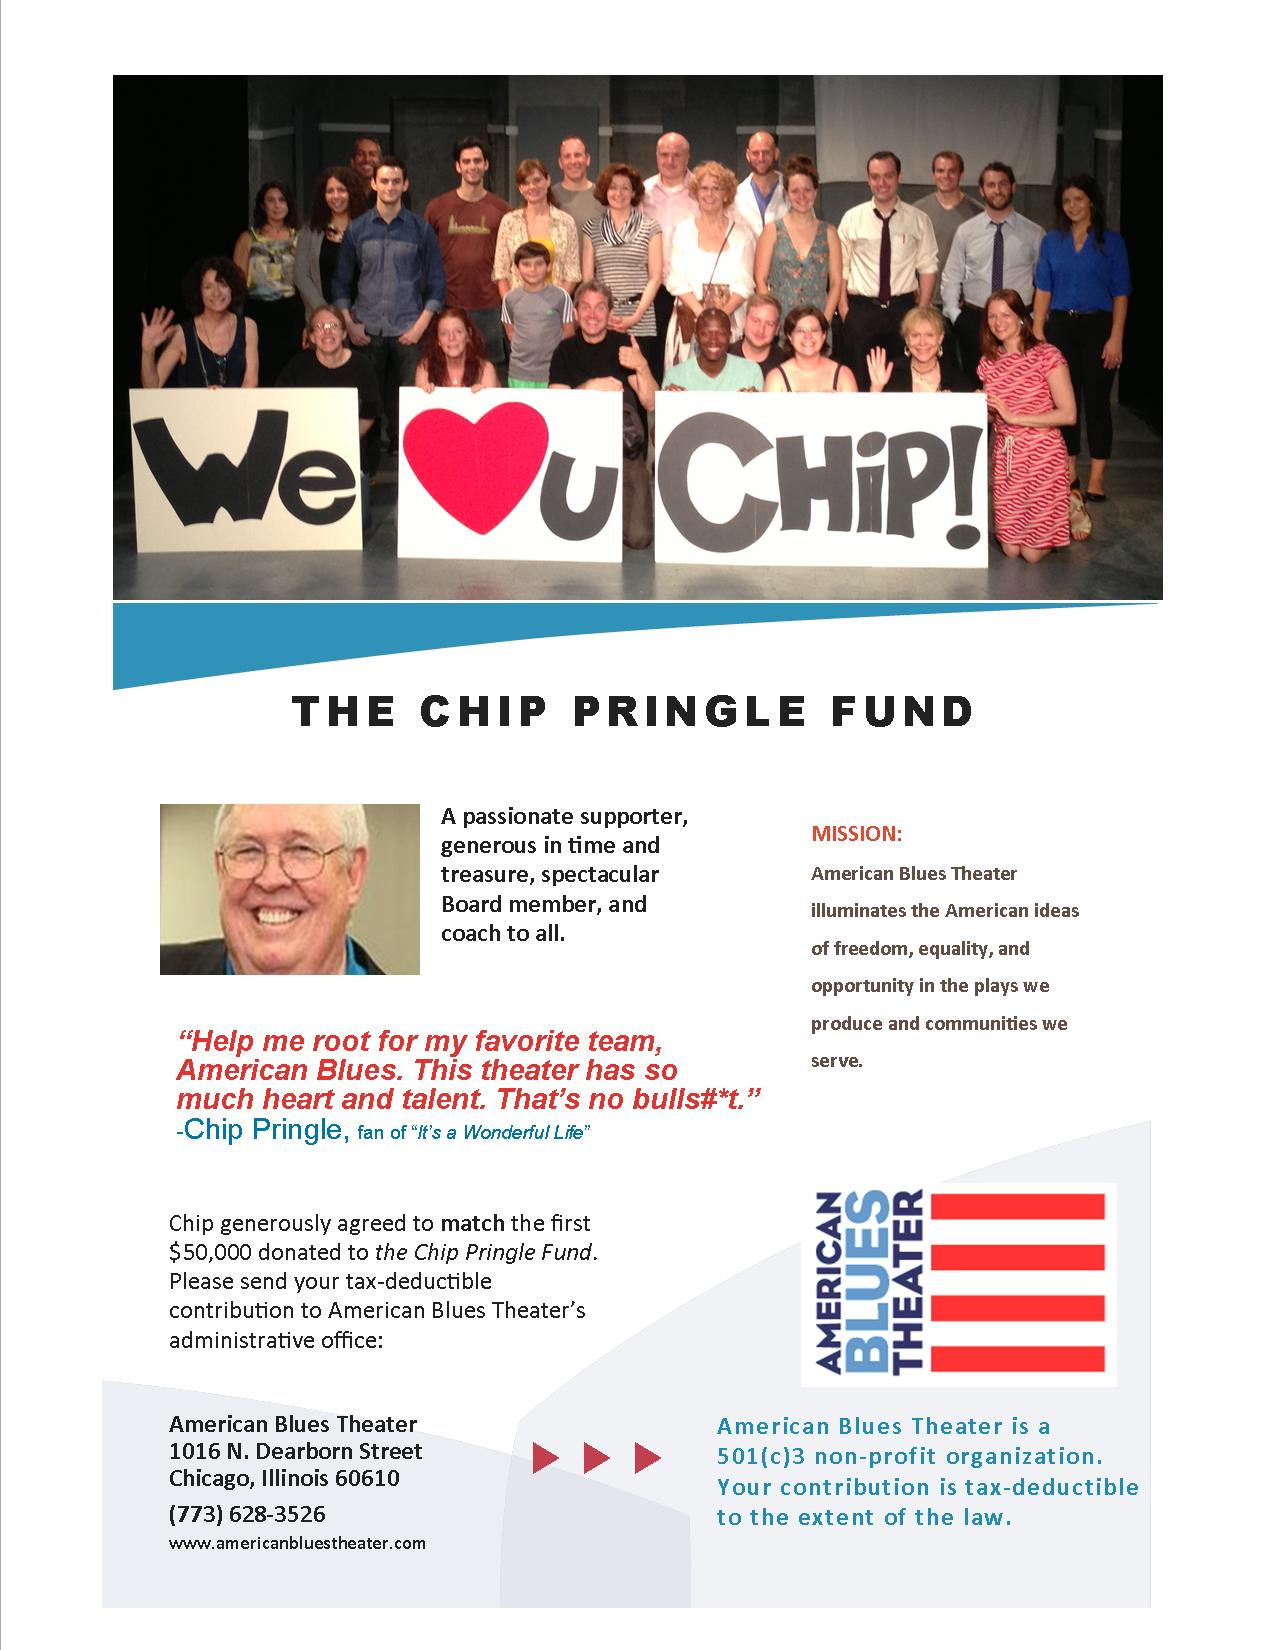 The Chip Pringle Fund